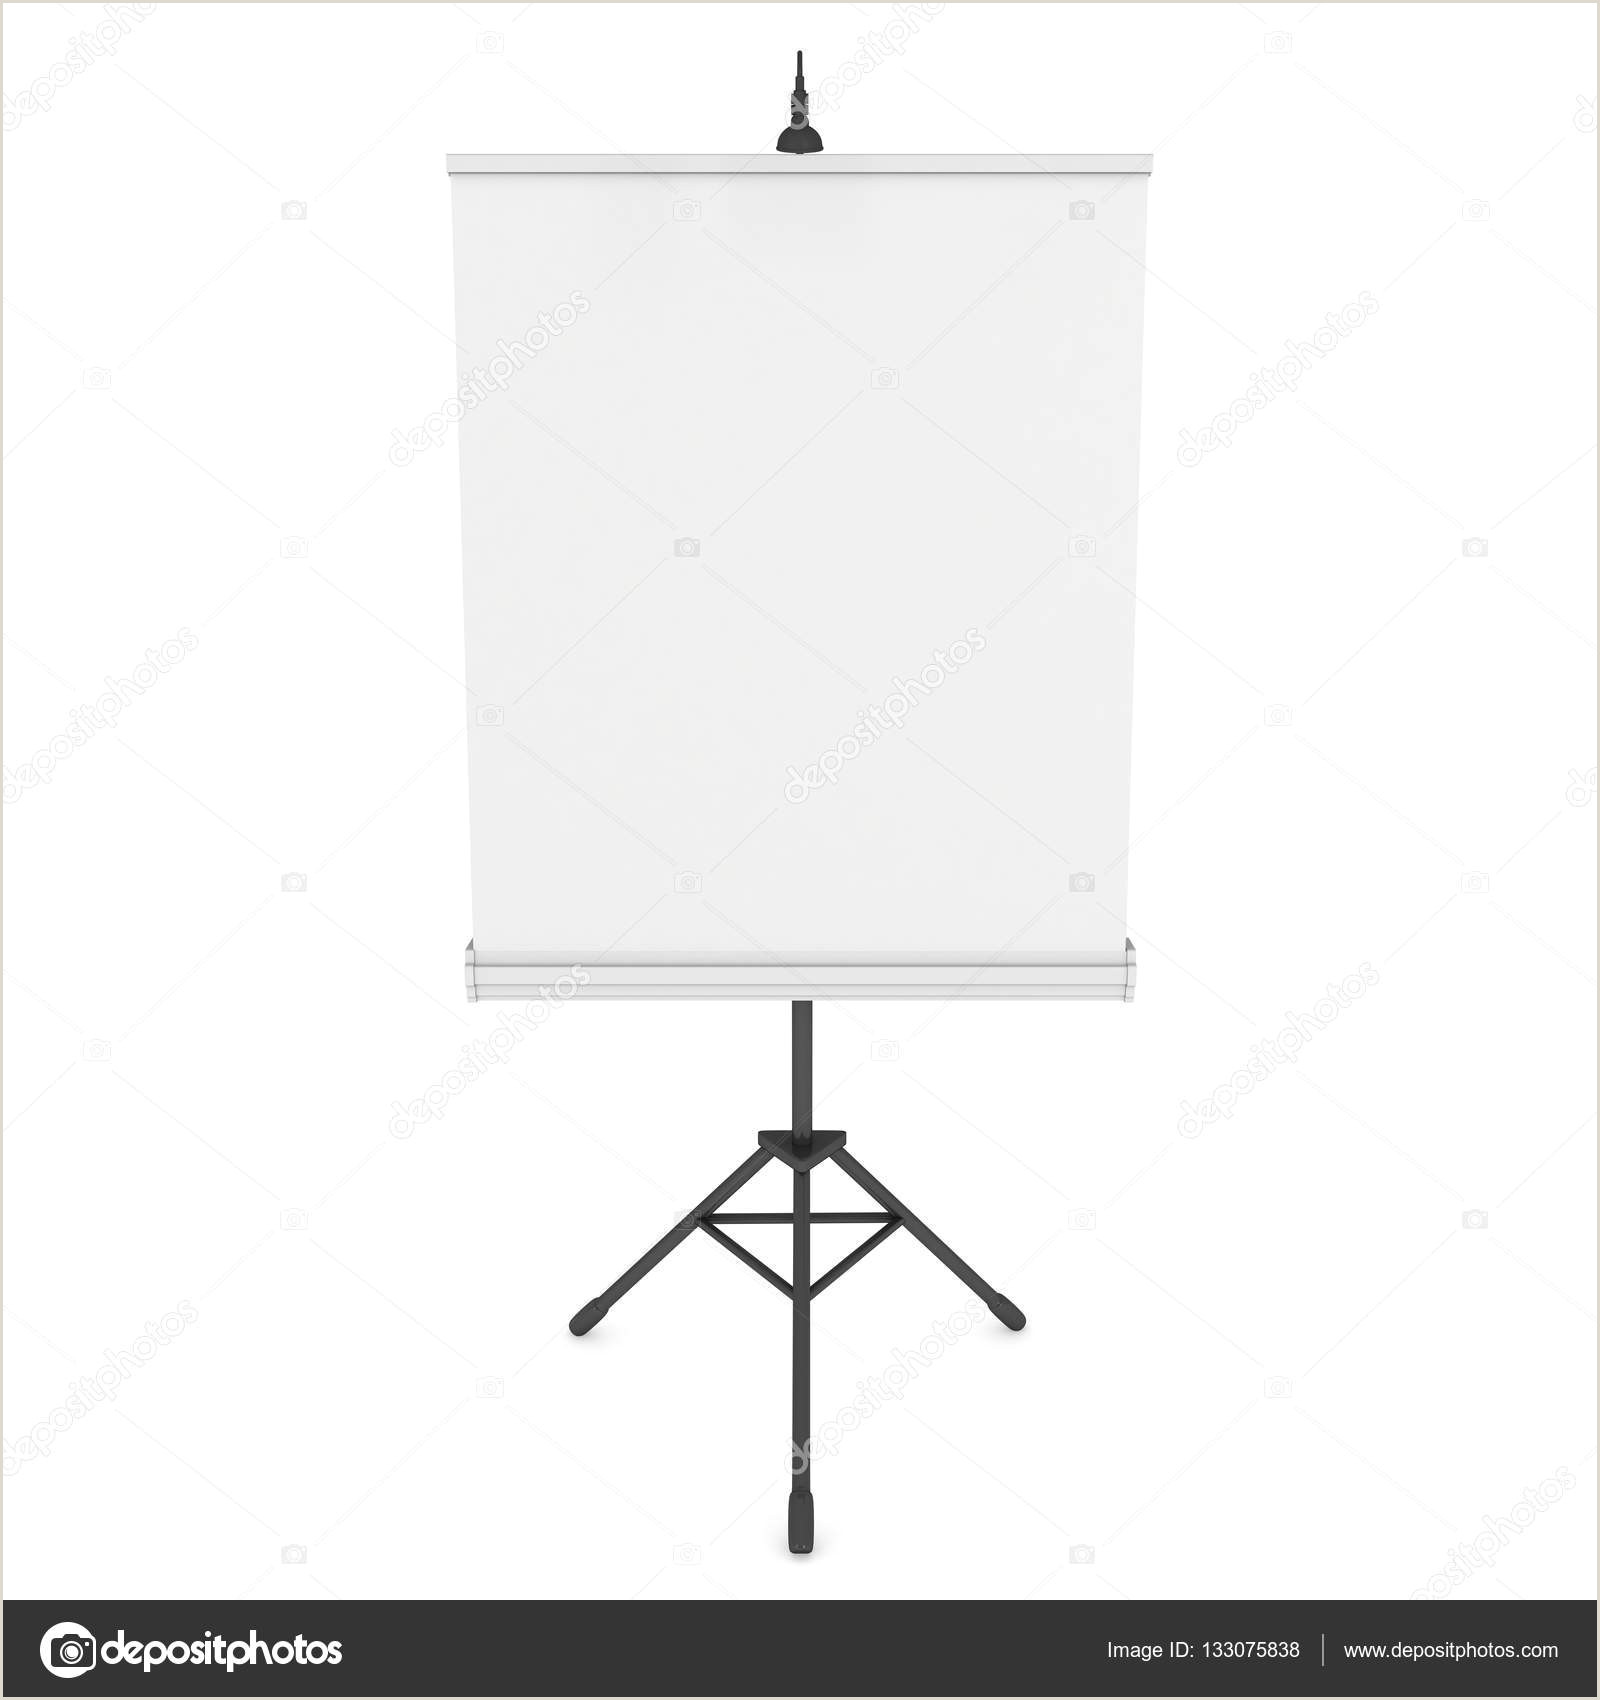 Collapsible Banner Stands Blank Roll Up Expo Banner Stand On TriPod